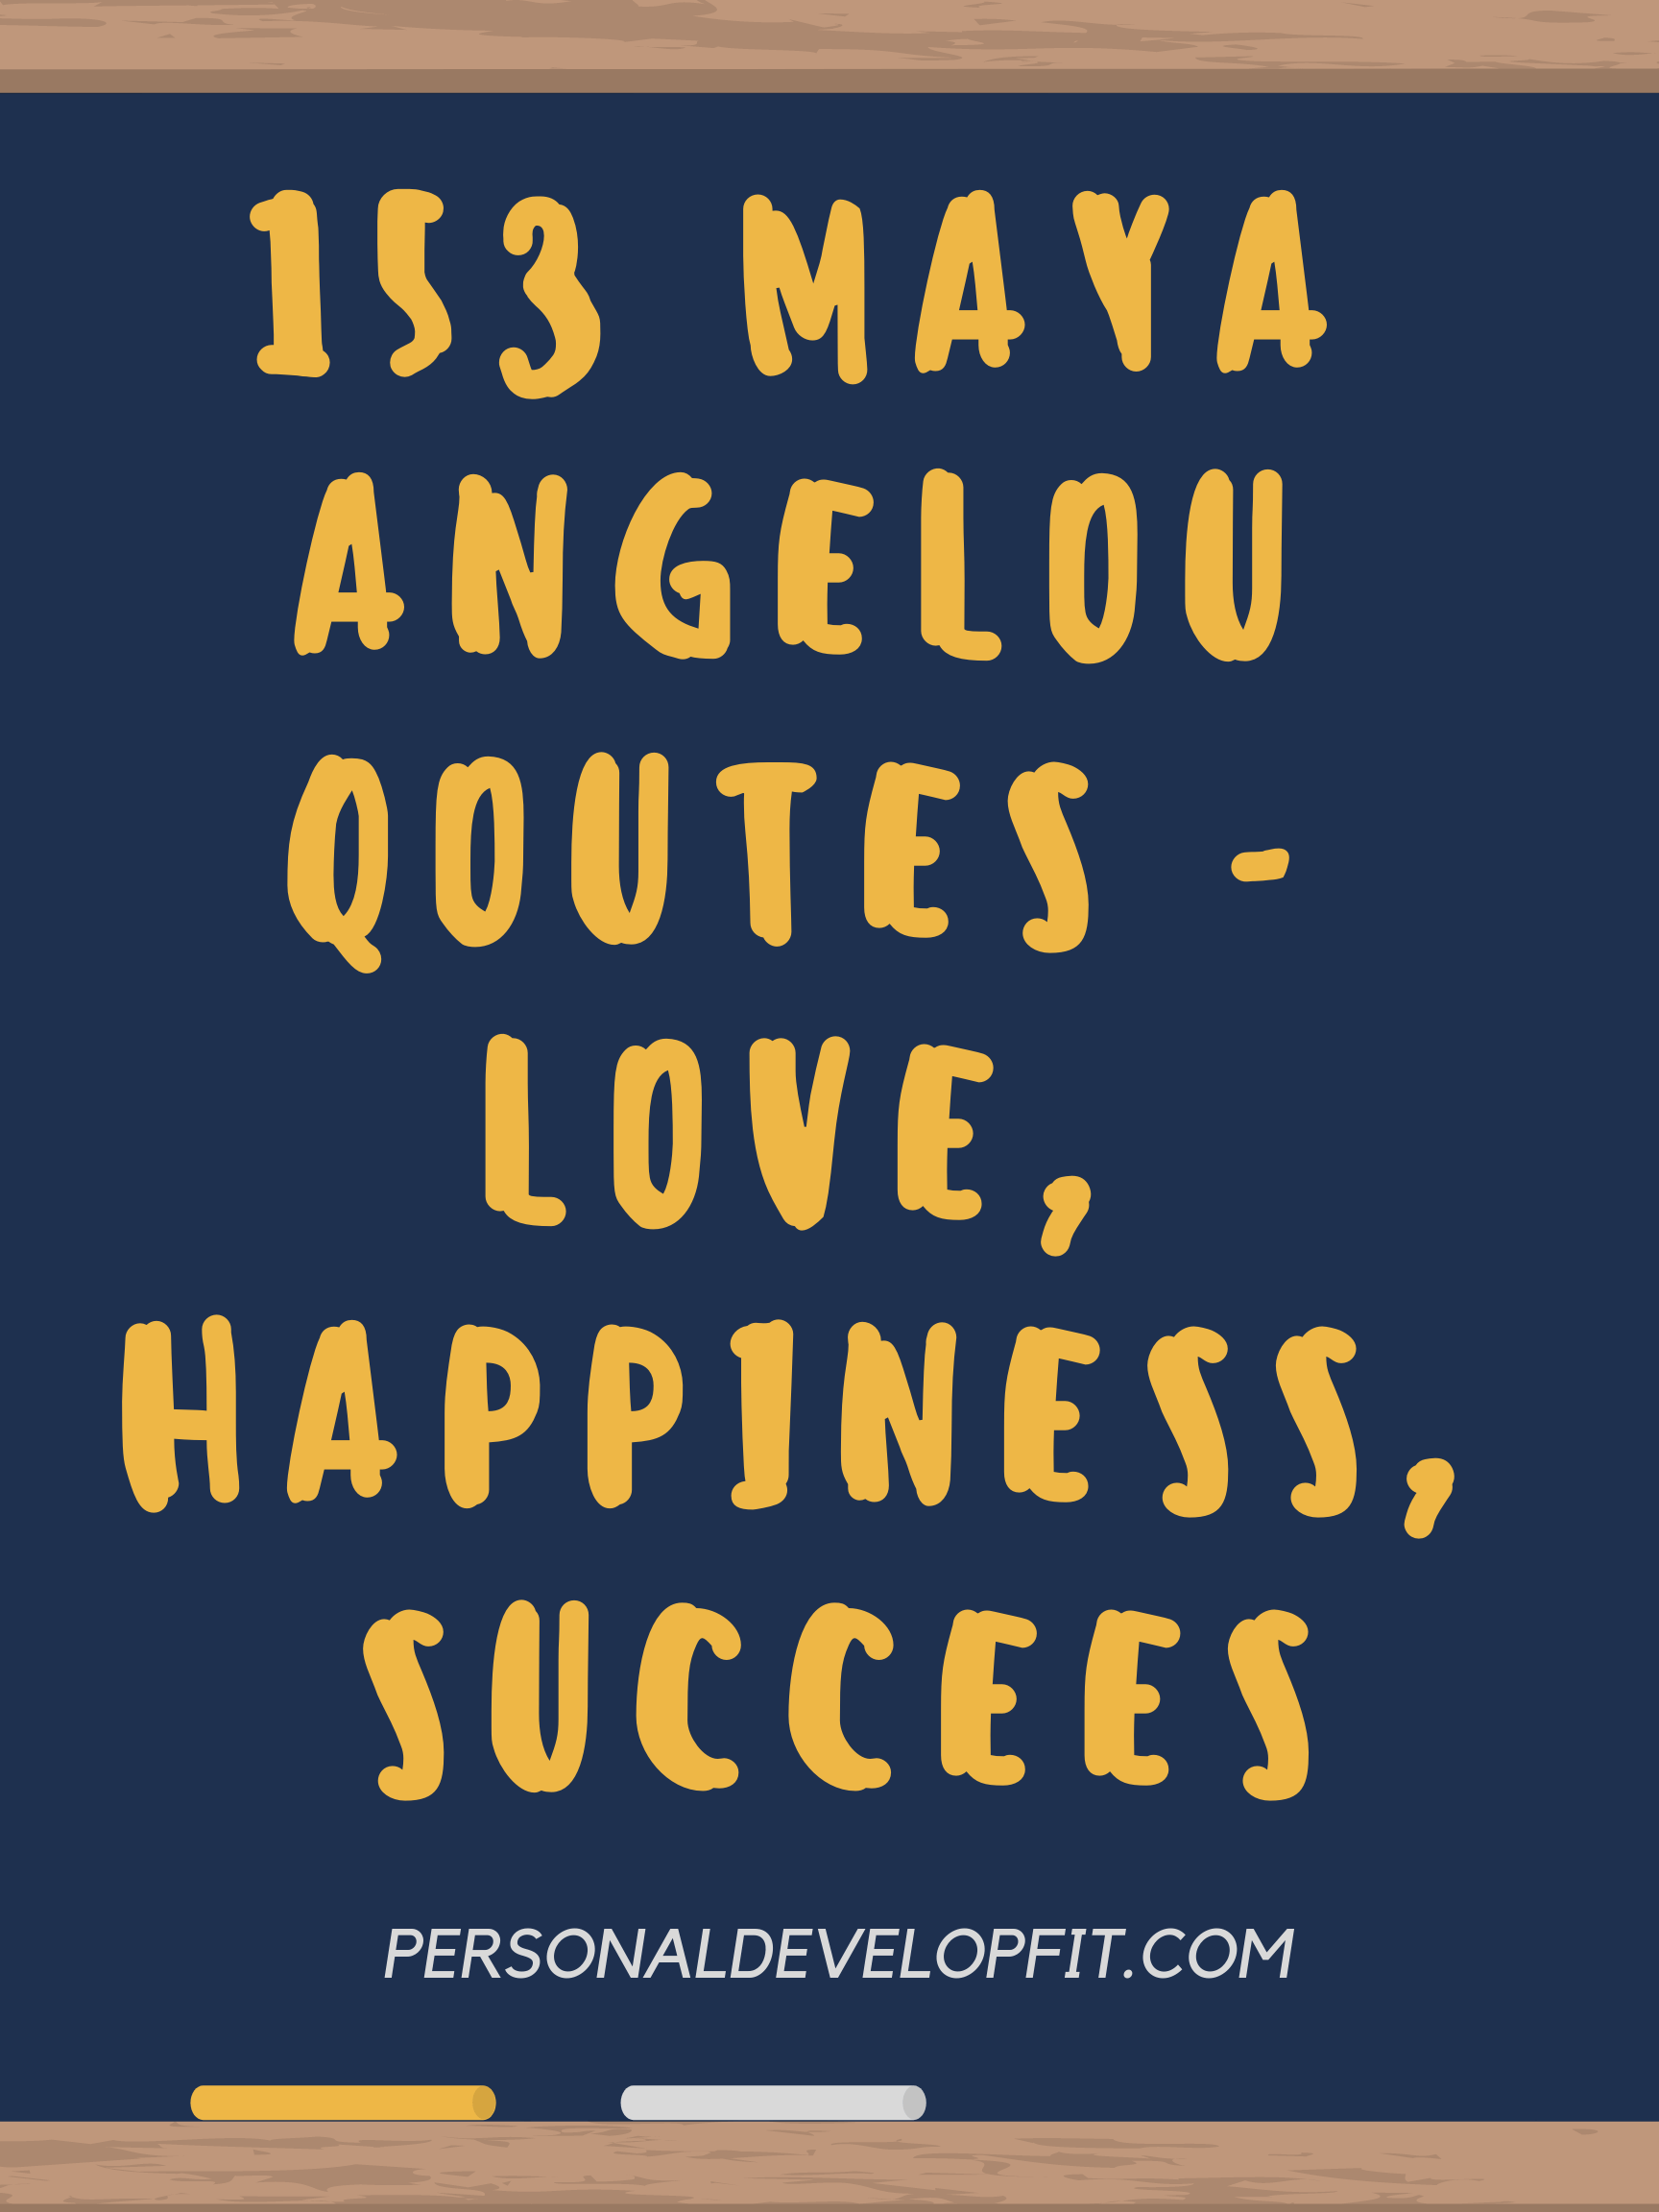 153 Maya Angelou Quotes On Love Happiness Family Amp Success